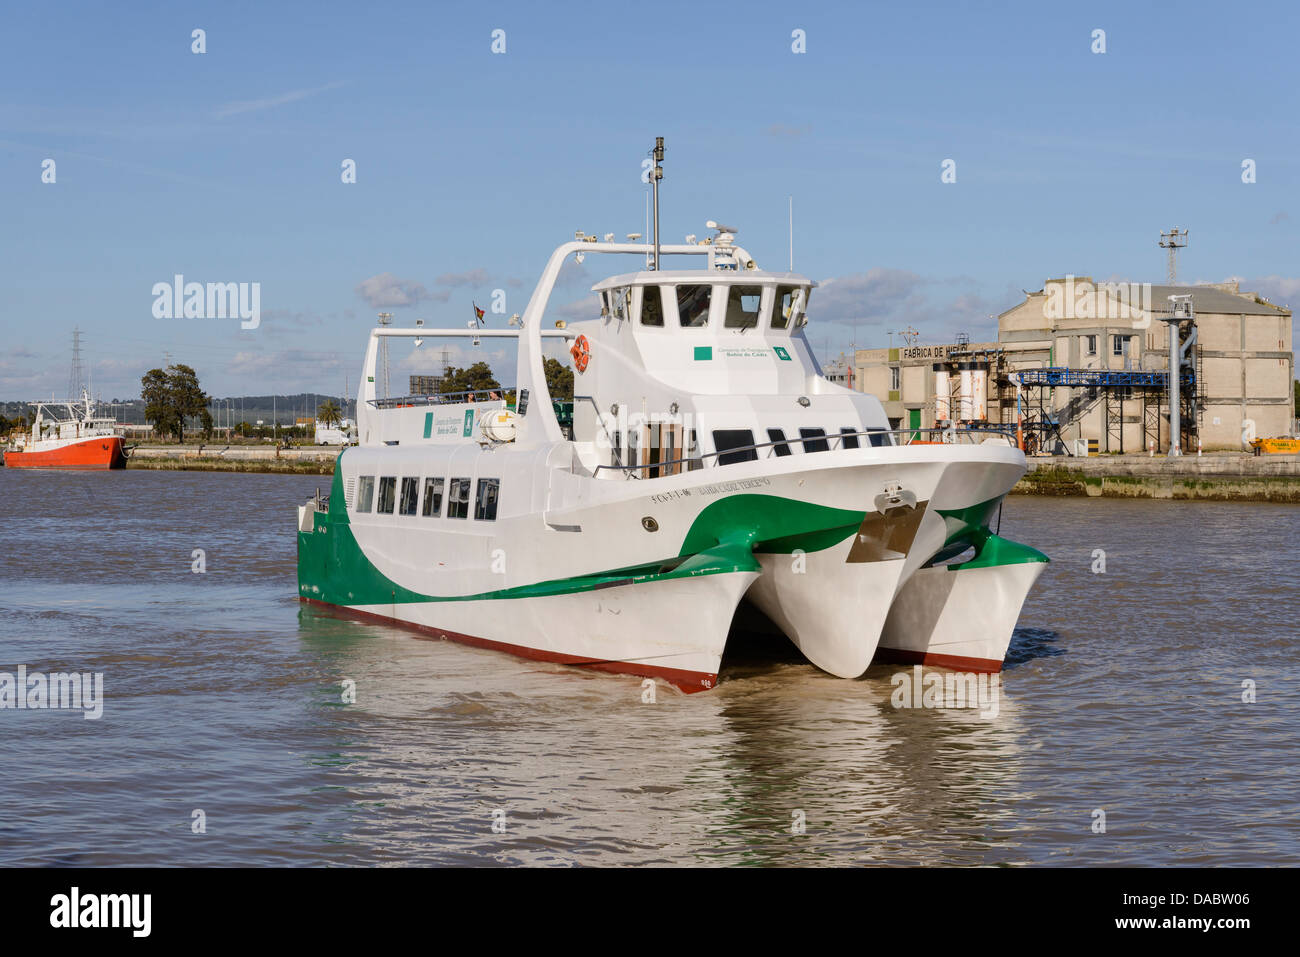 Bahia de cadiz ferry boat leaving el puerto de santa maria for cadiz stock photo royalty free - Idental puerto santa maria ...